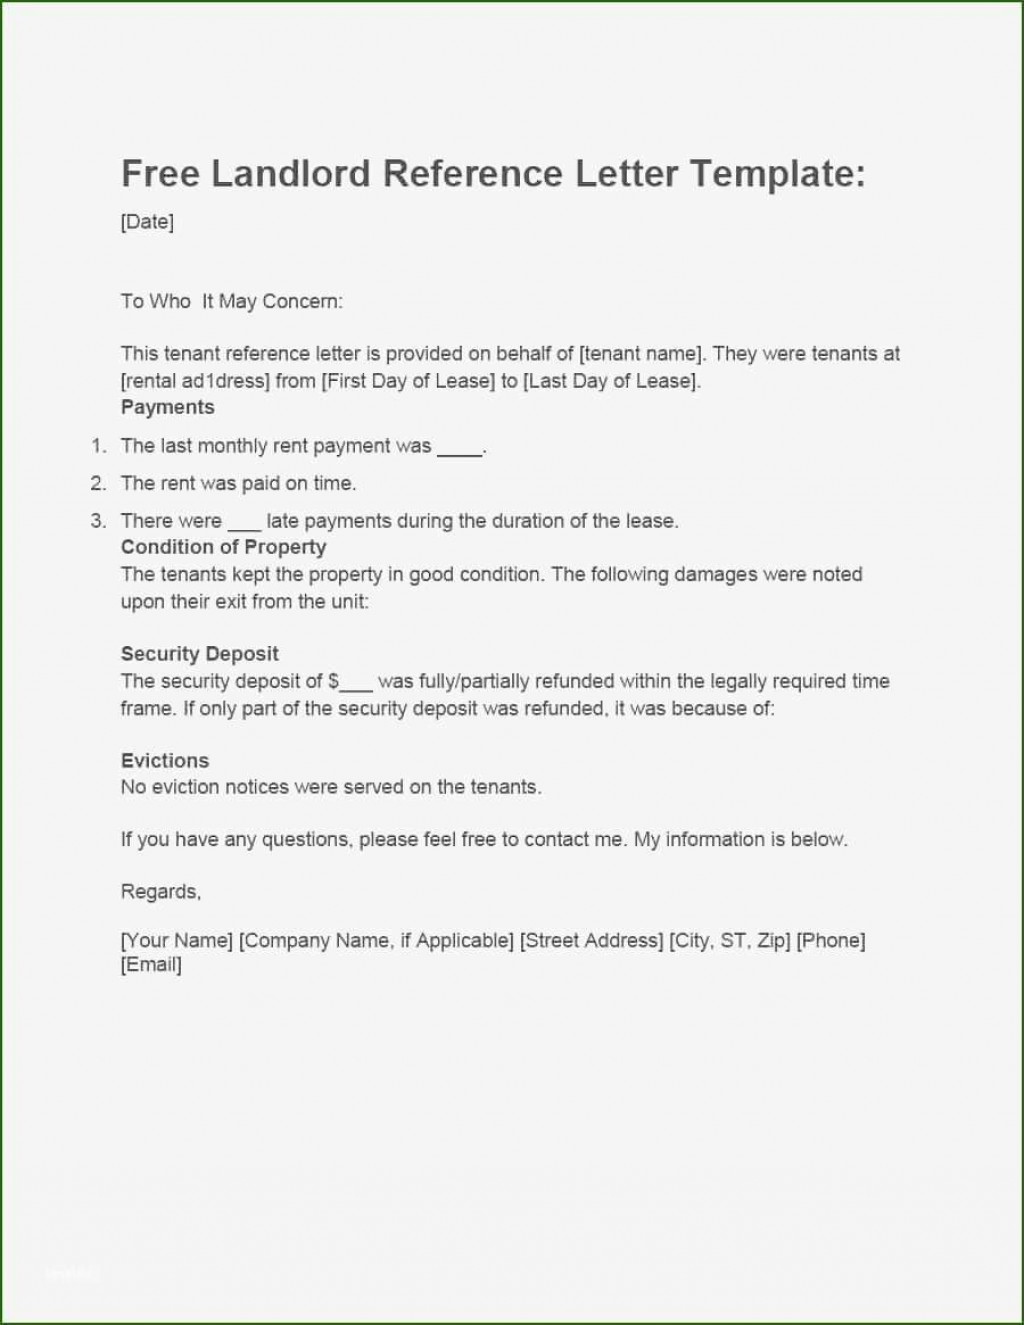 001 Magnificent Free Reference Letter Template For Landlord High Definition  RentalLarge